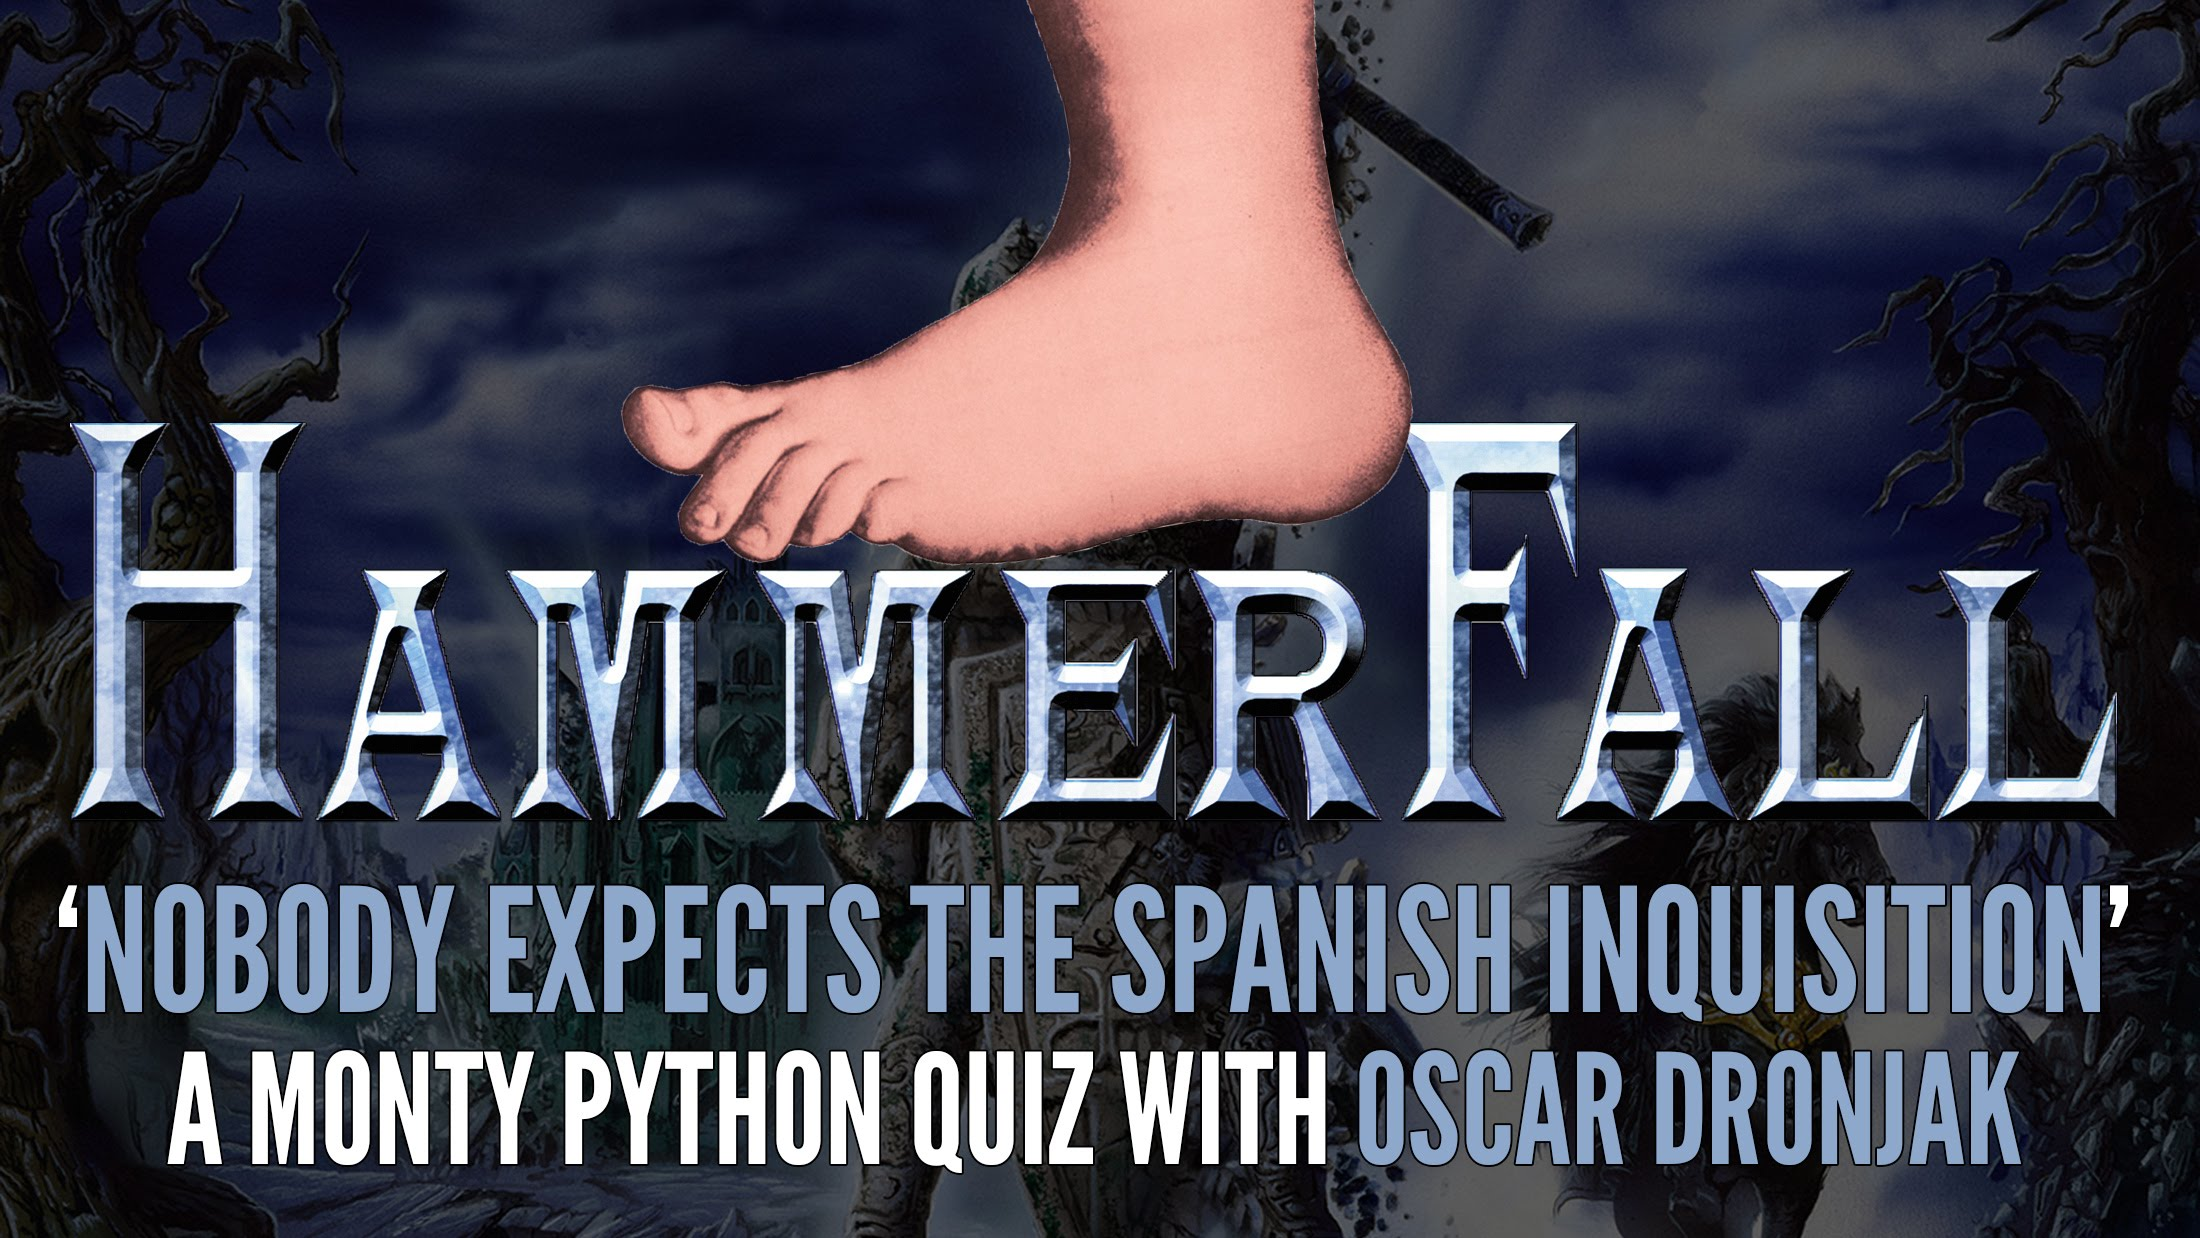 HAMMERFALL - Oscar Dronjak in 'Nobody Expects The Spanish Inquisition'